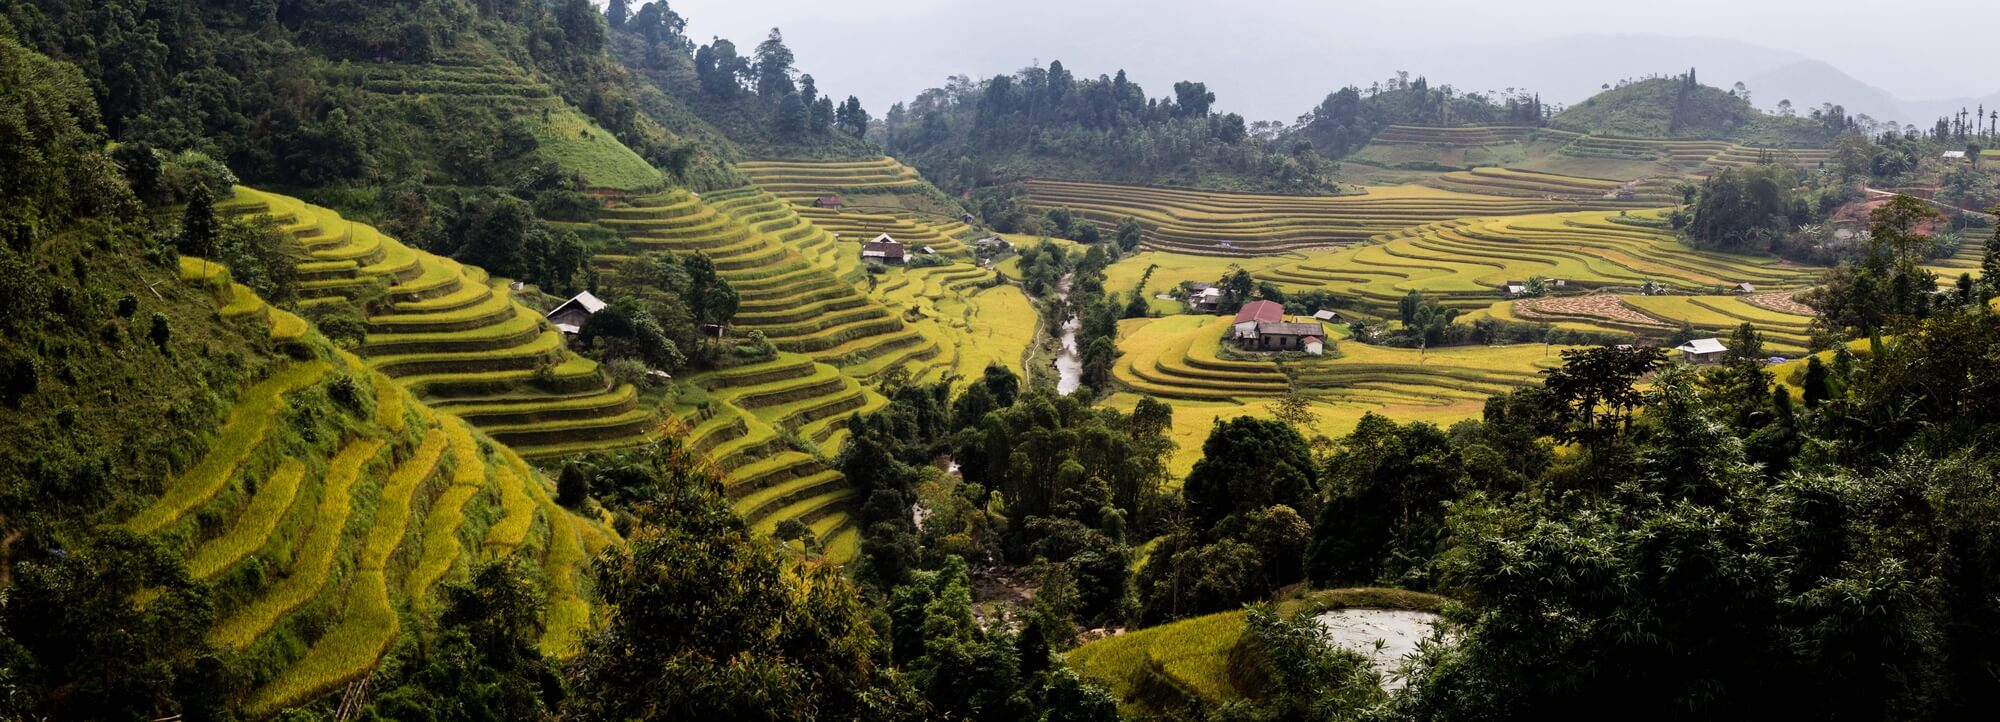 Hoang Su Phi panoramic landscape of houses in rice terraces